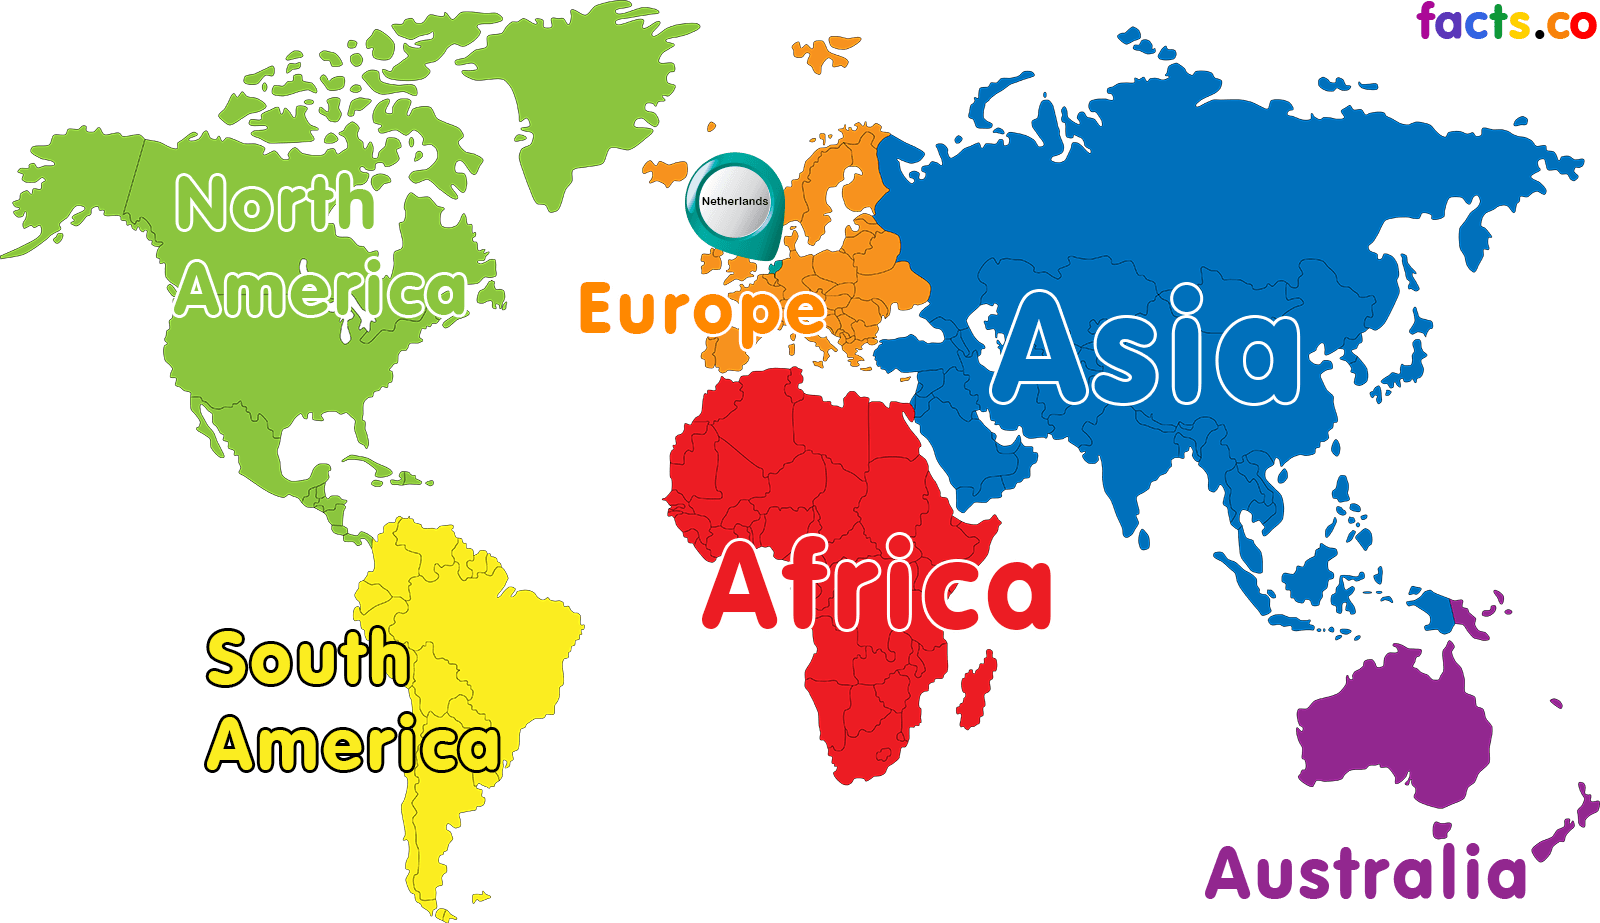 Image Result For Netherlands World Map School Holidays Christmas And ...